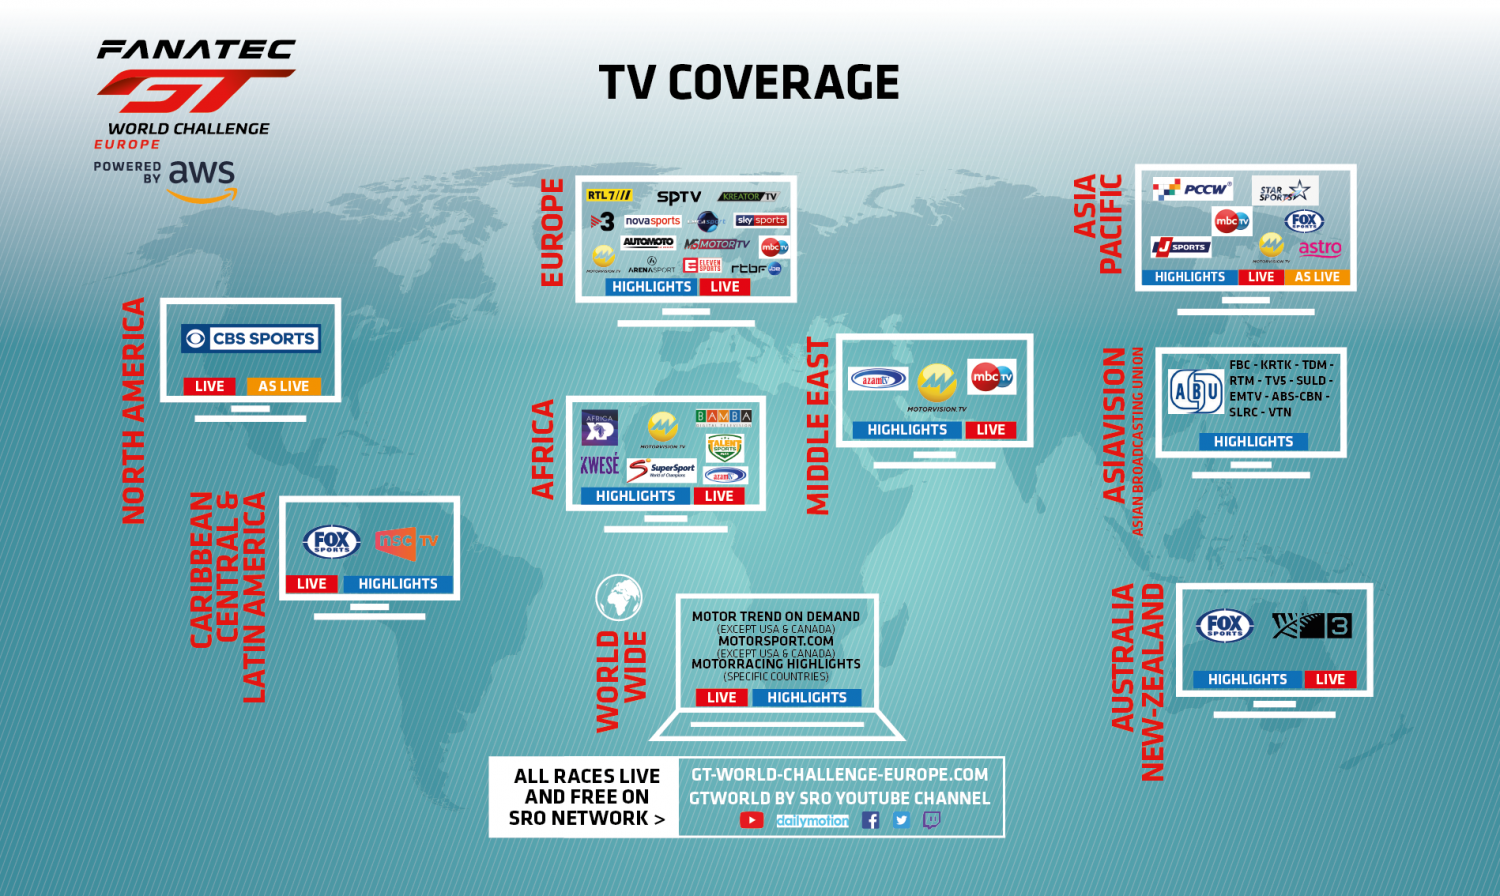 Extensive television and online coverage confirmed for 2021 Fanatec GT World Challenge Europe Powered by AWS season